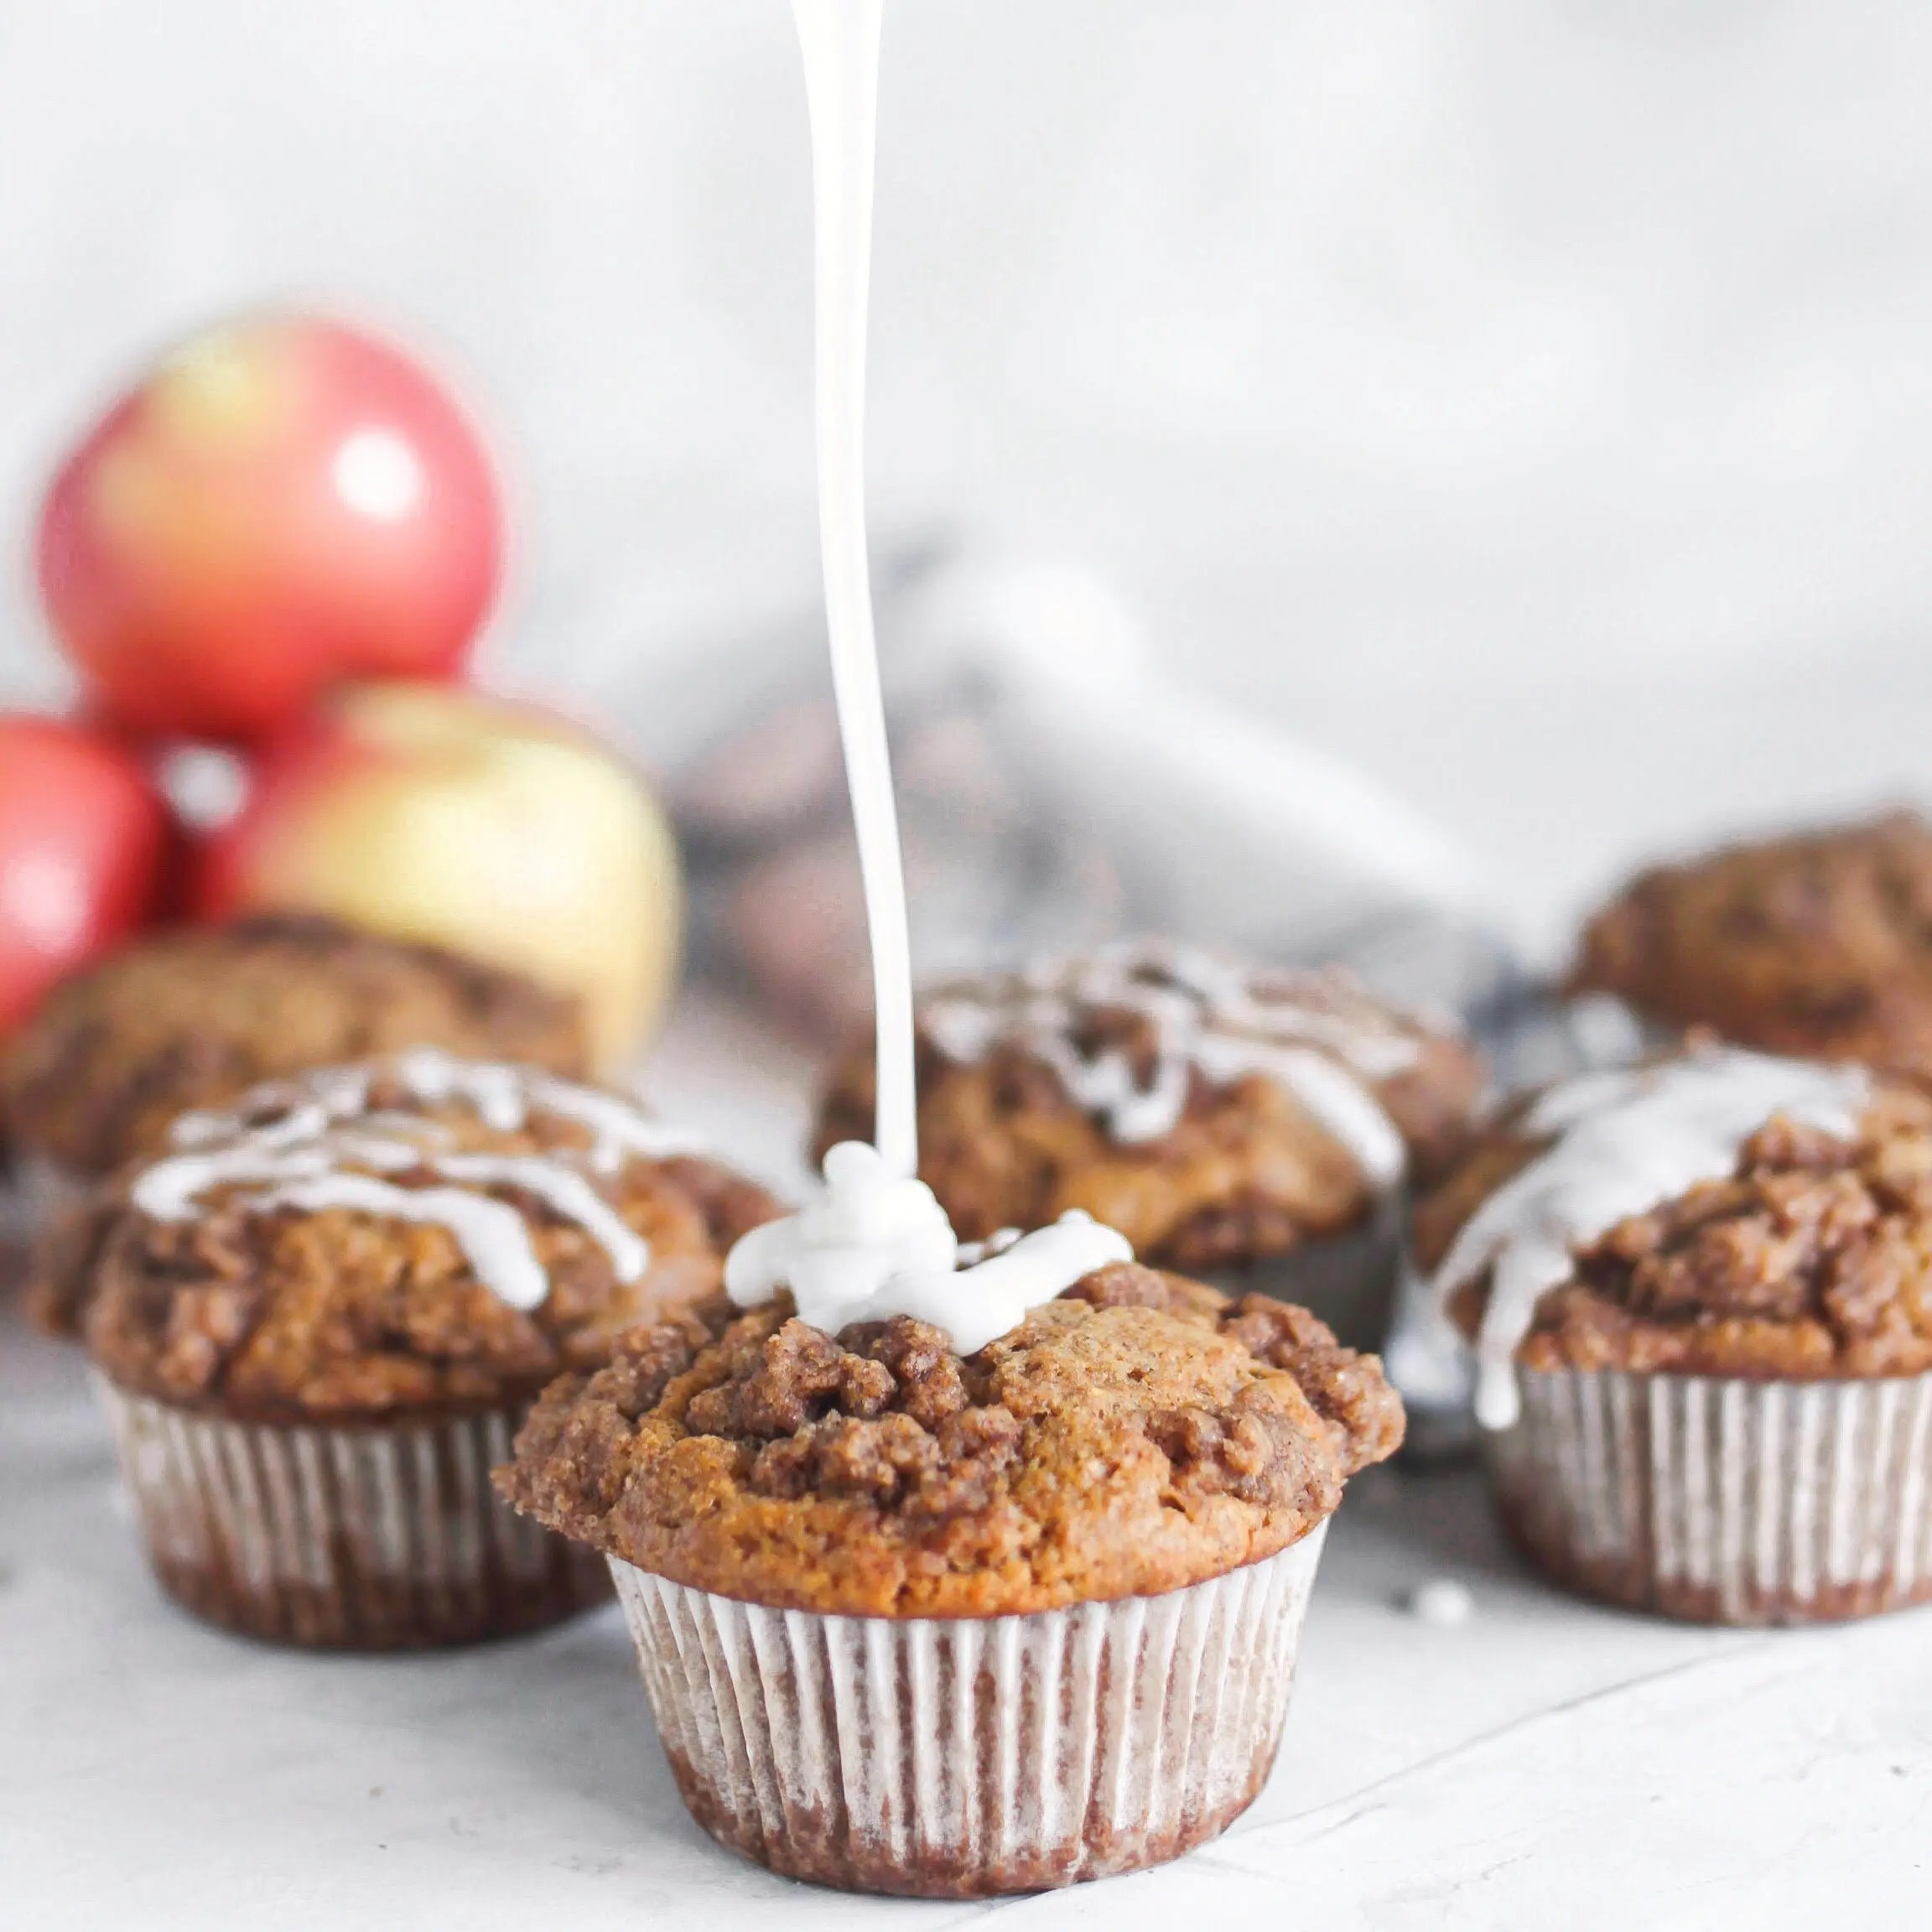 Apple Sauce Crumb Topping Muffins